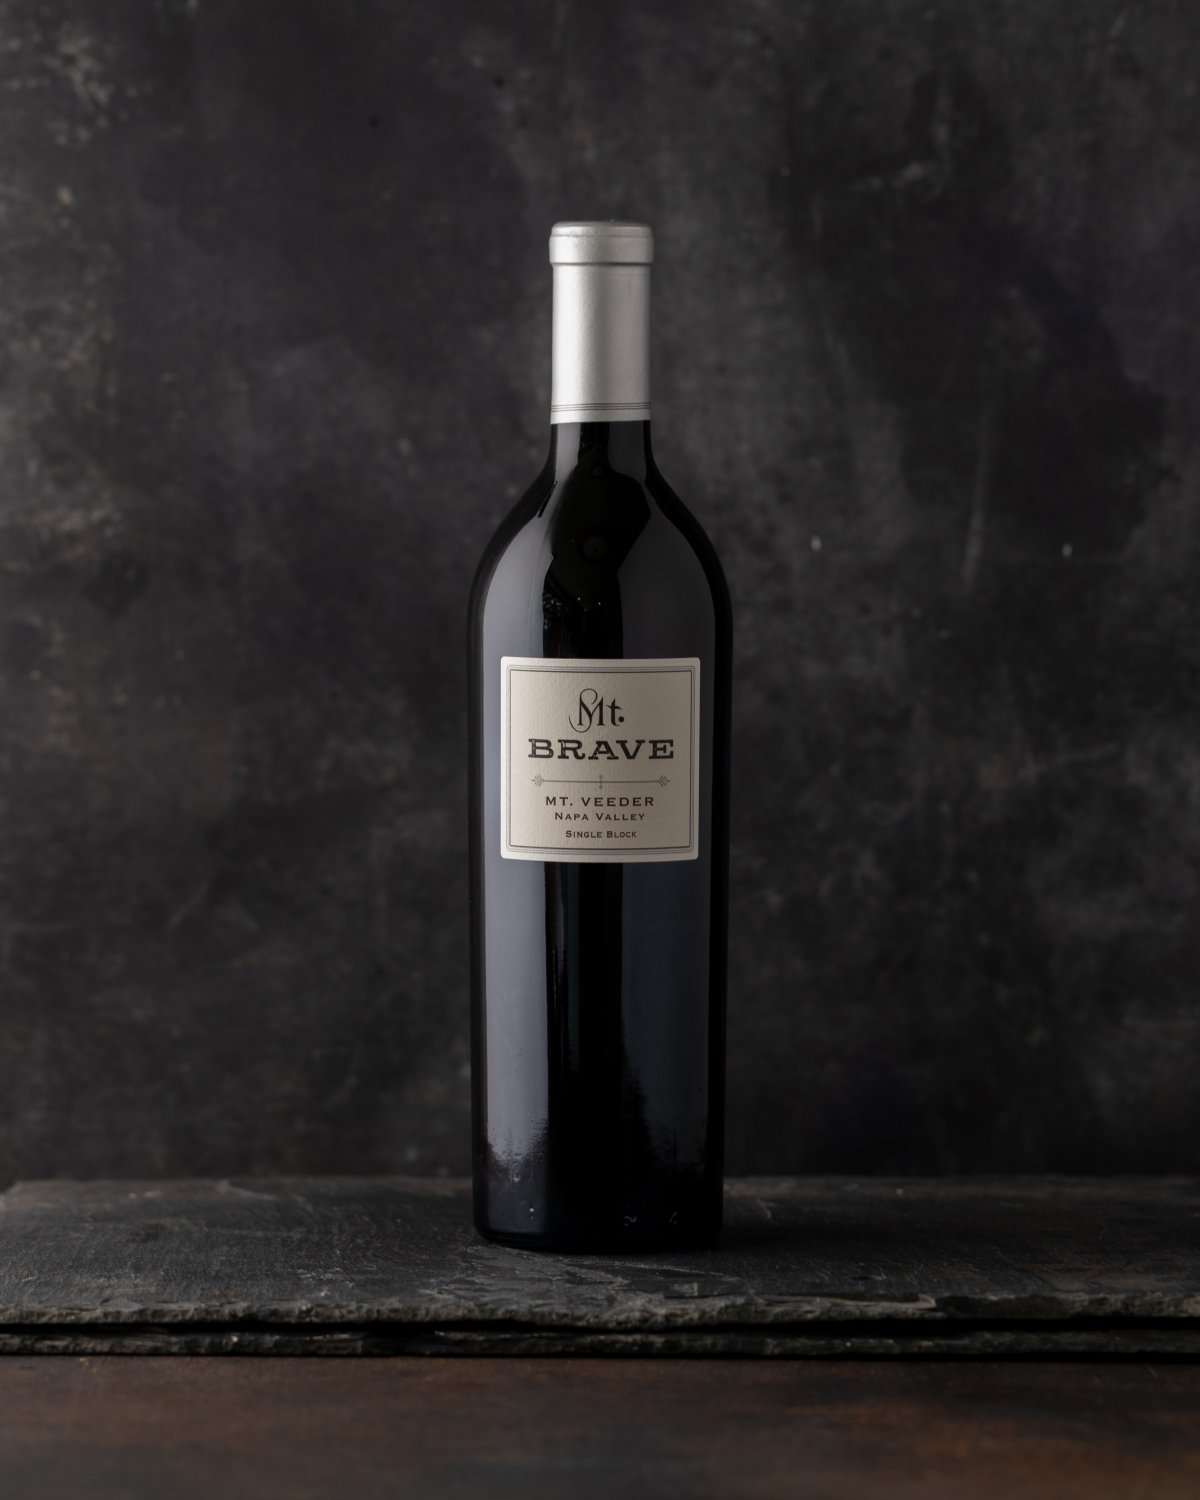 2012 Mt. Brave Single Block Cabernet Sauvignon